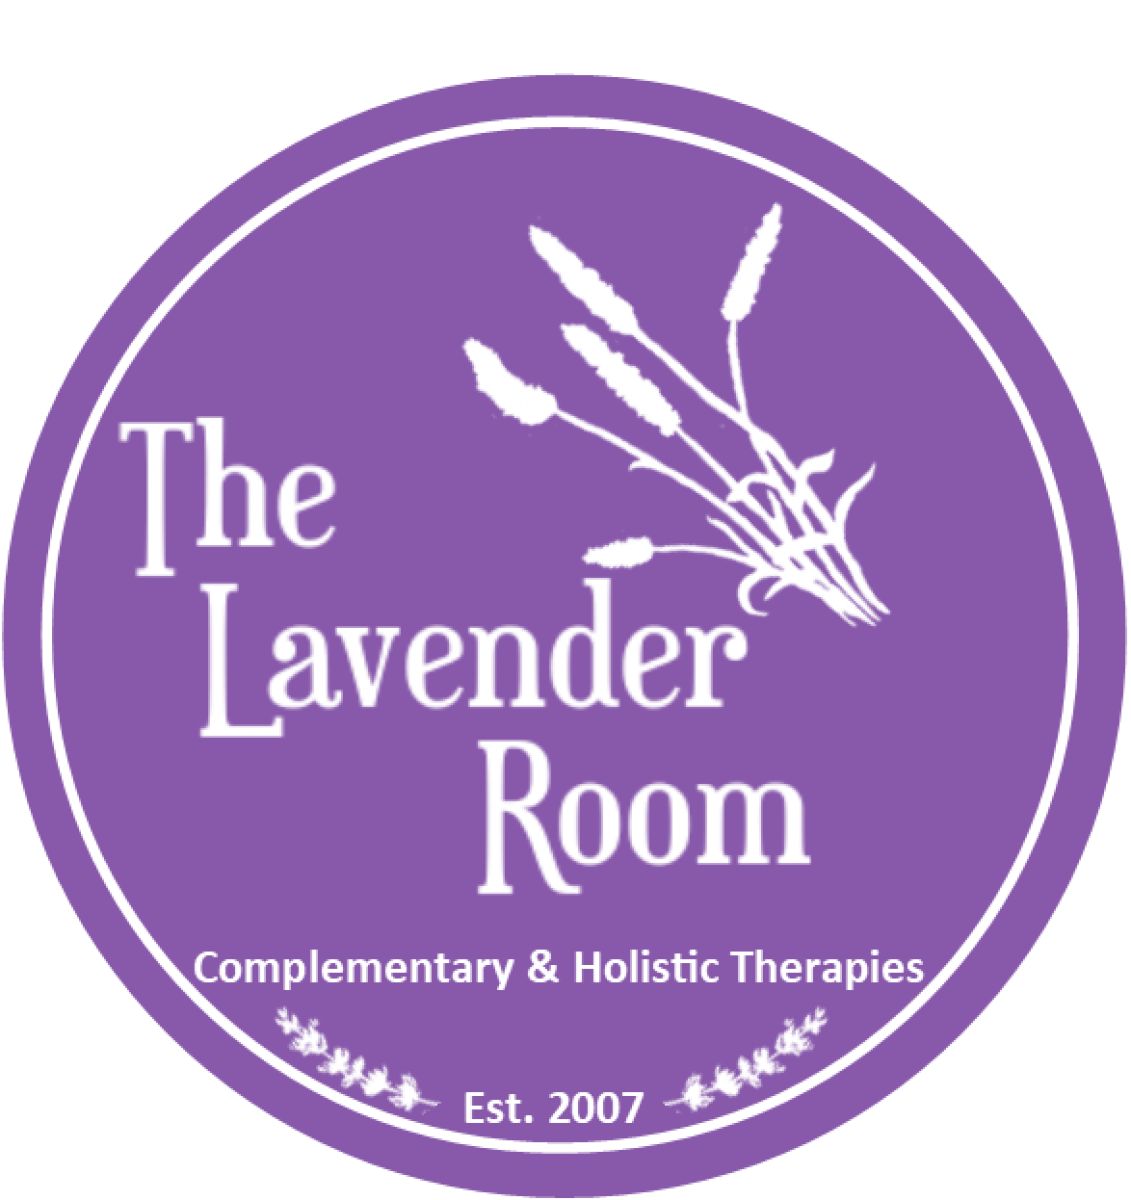 The Lavender Room Troon Image 1